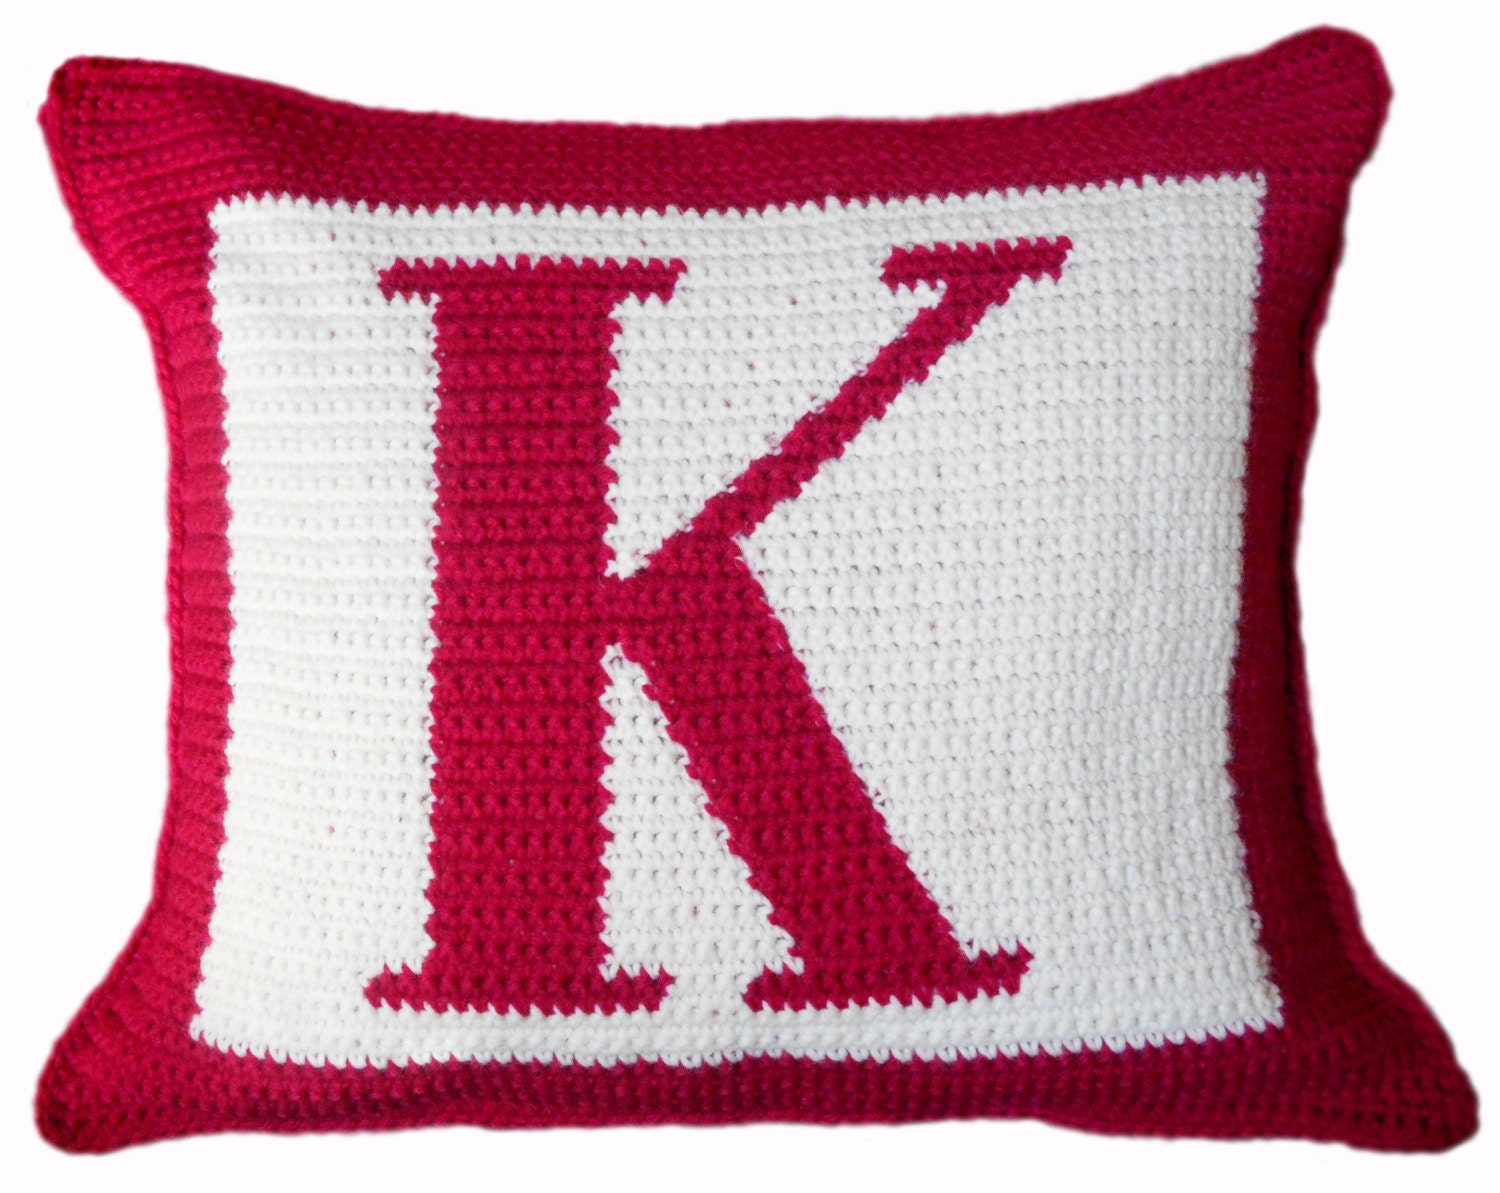 Free Crochet Letter Pillow Pattern : Crochet Pattern Letter K Crochet Pillow